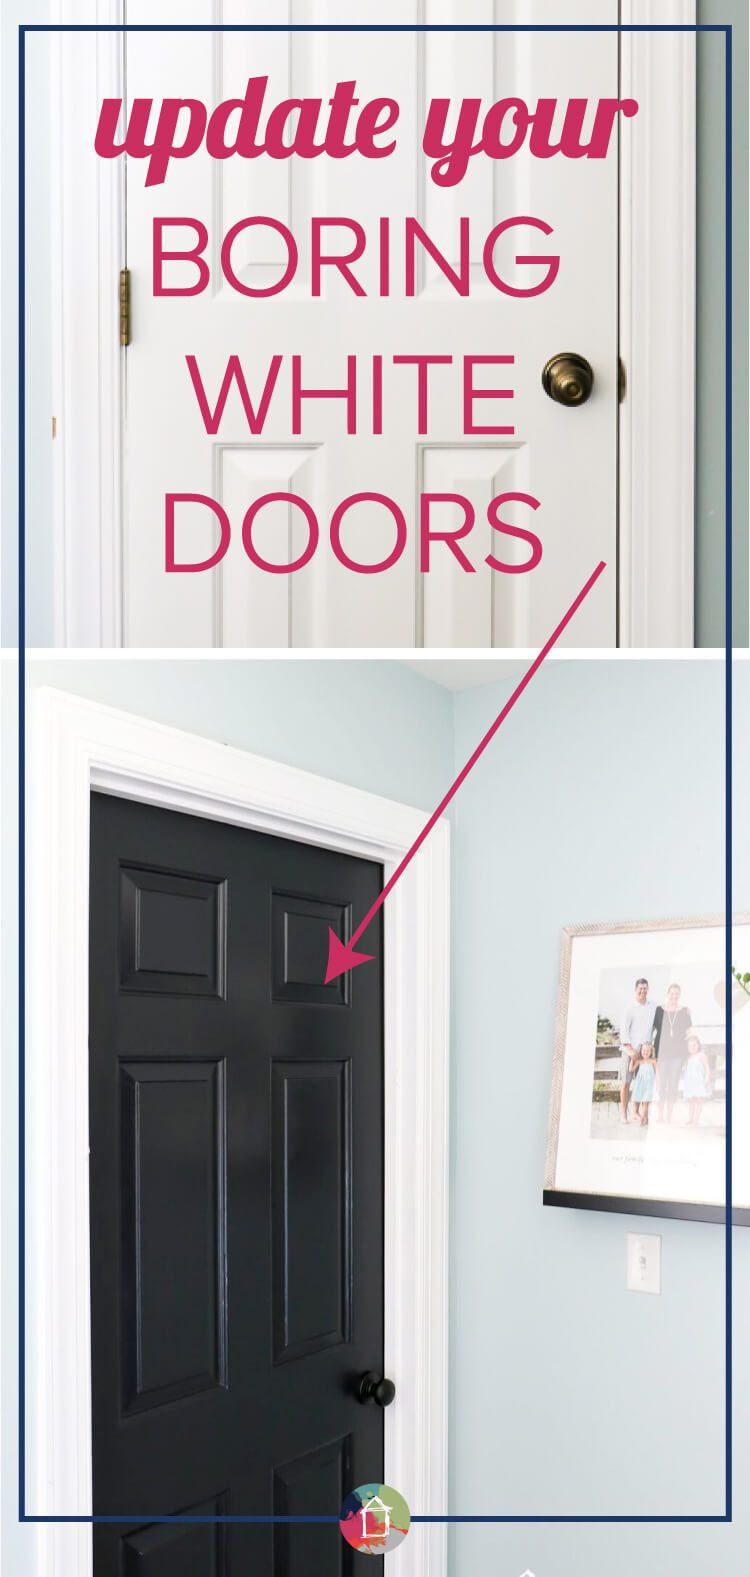 Black interior doors pinterest - Love The Idea Of Black Interior Doors For An Affordable Interior Update All You Have